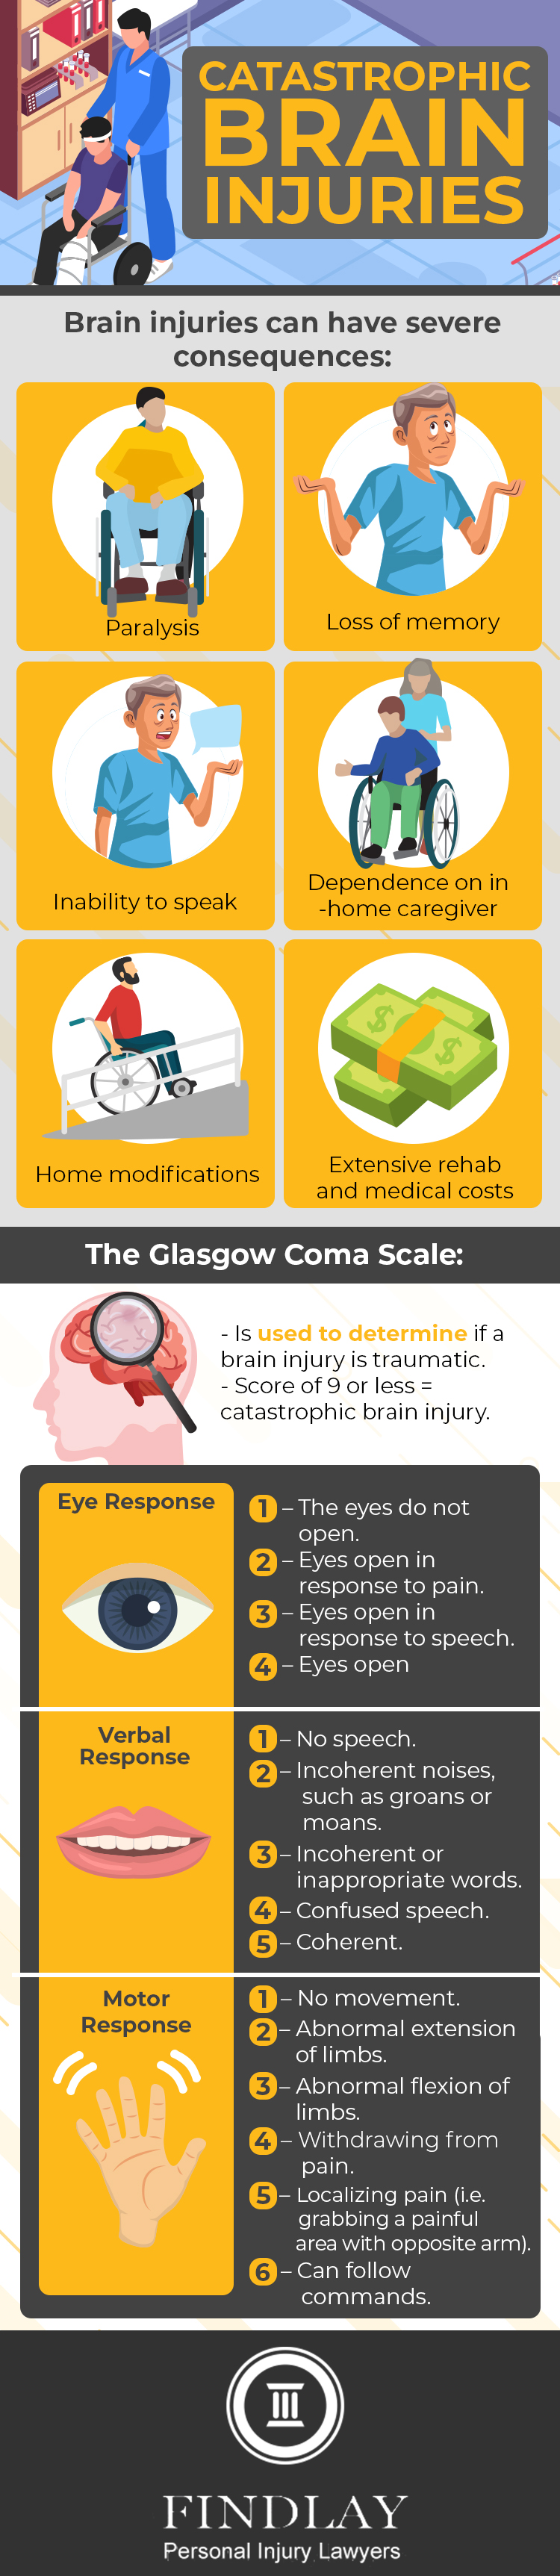 catastrophic brain injuries infographic